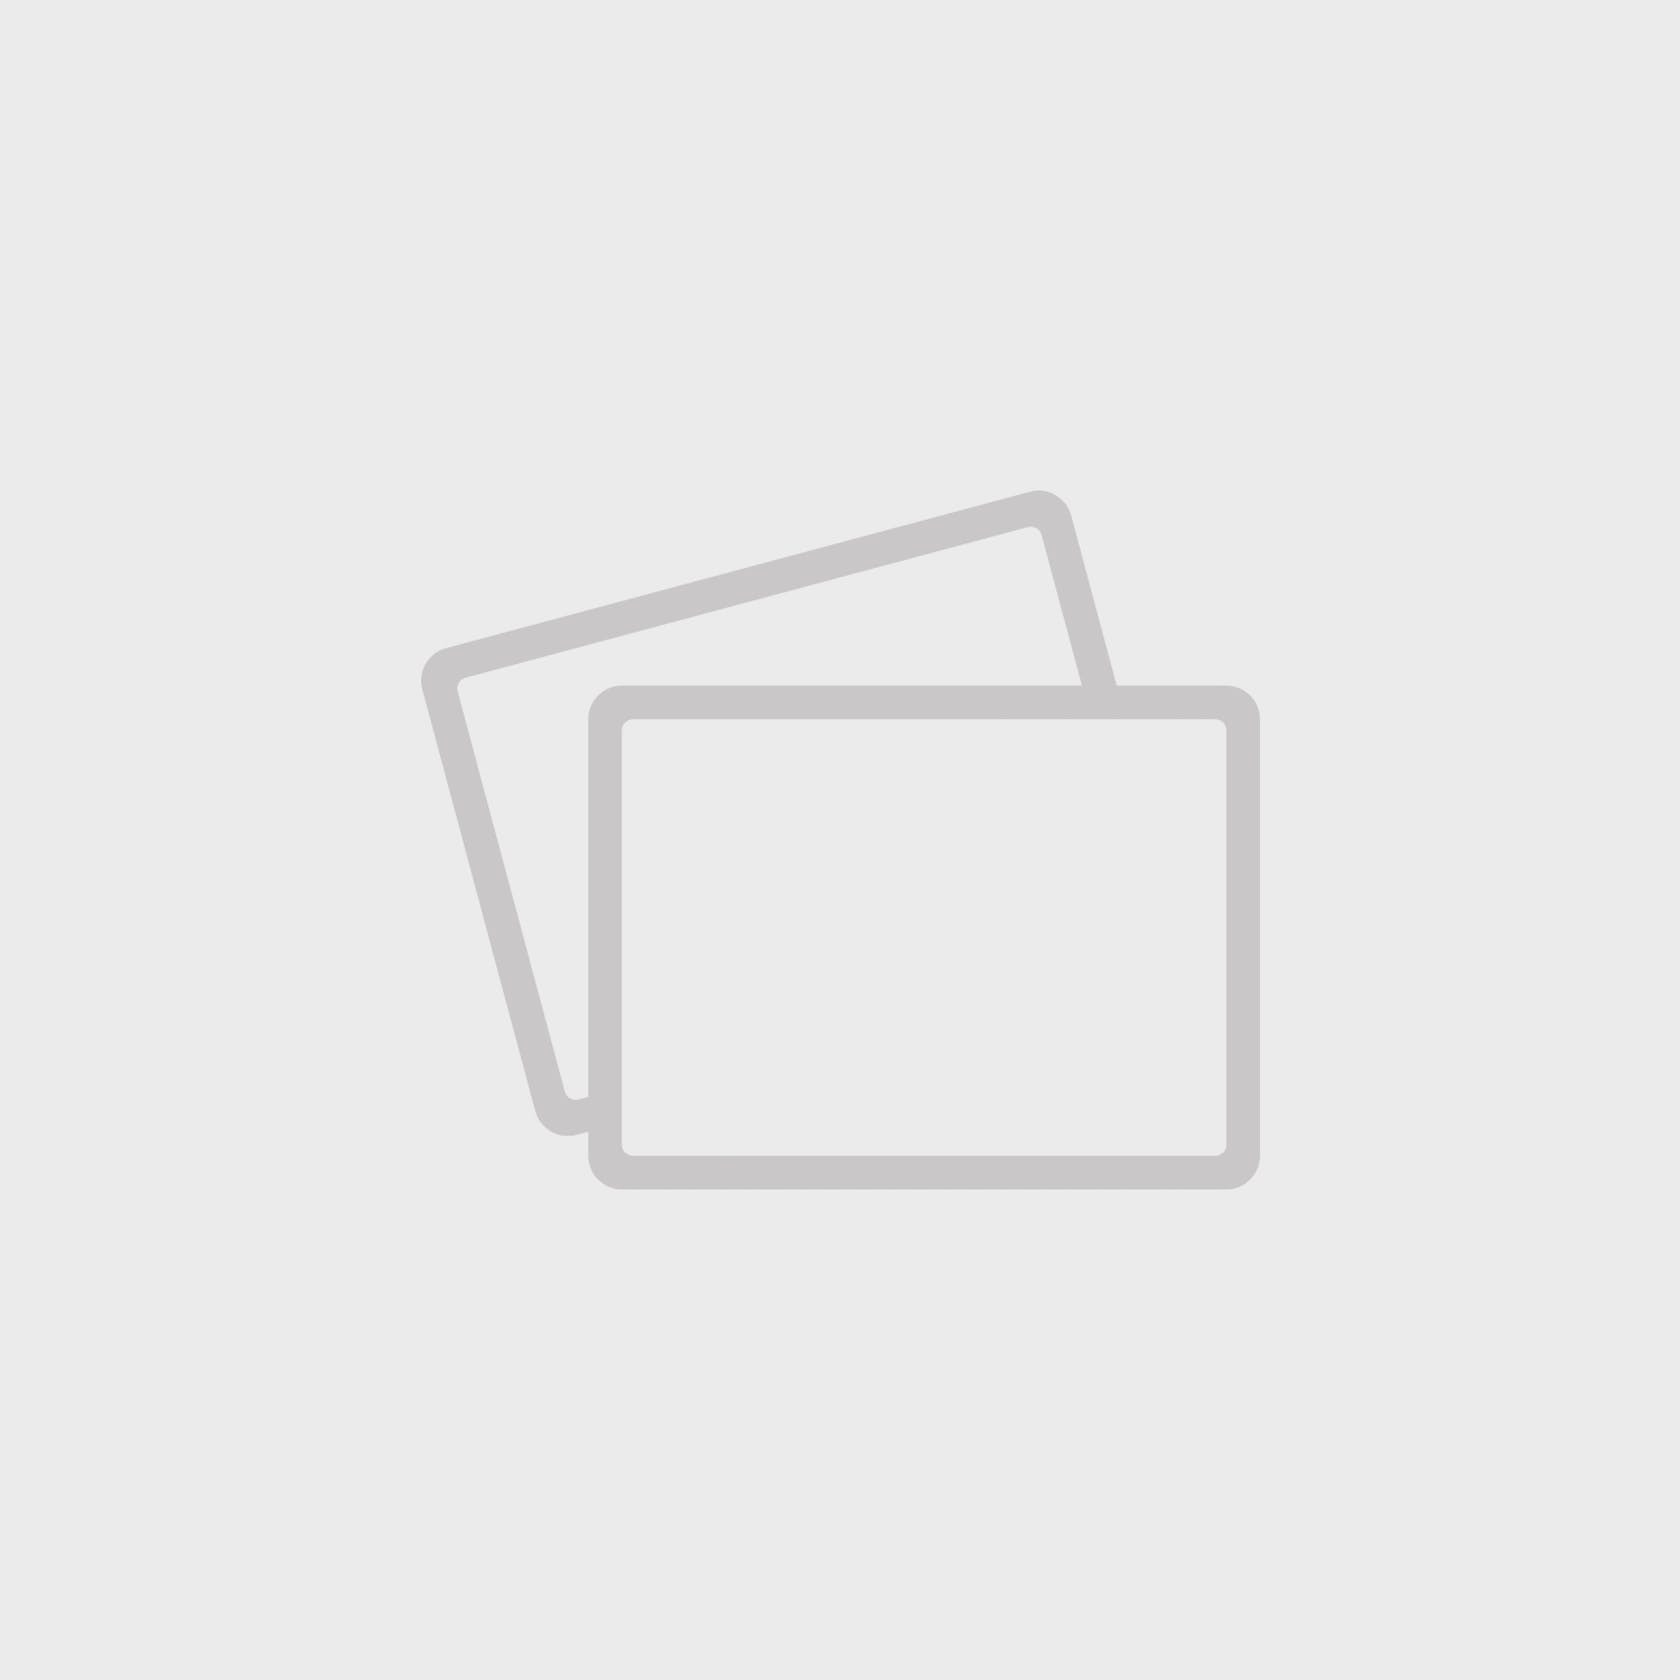 300215 Pleistertroffel rond 160 mm. RVS